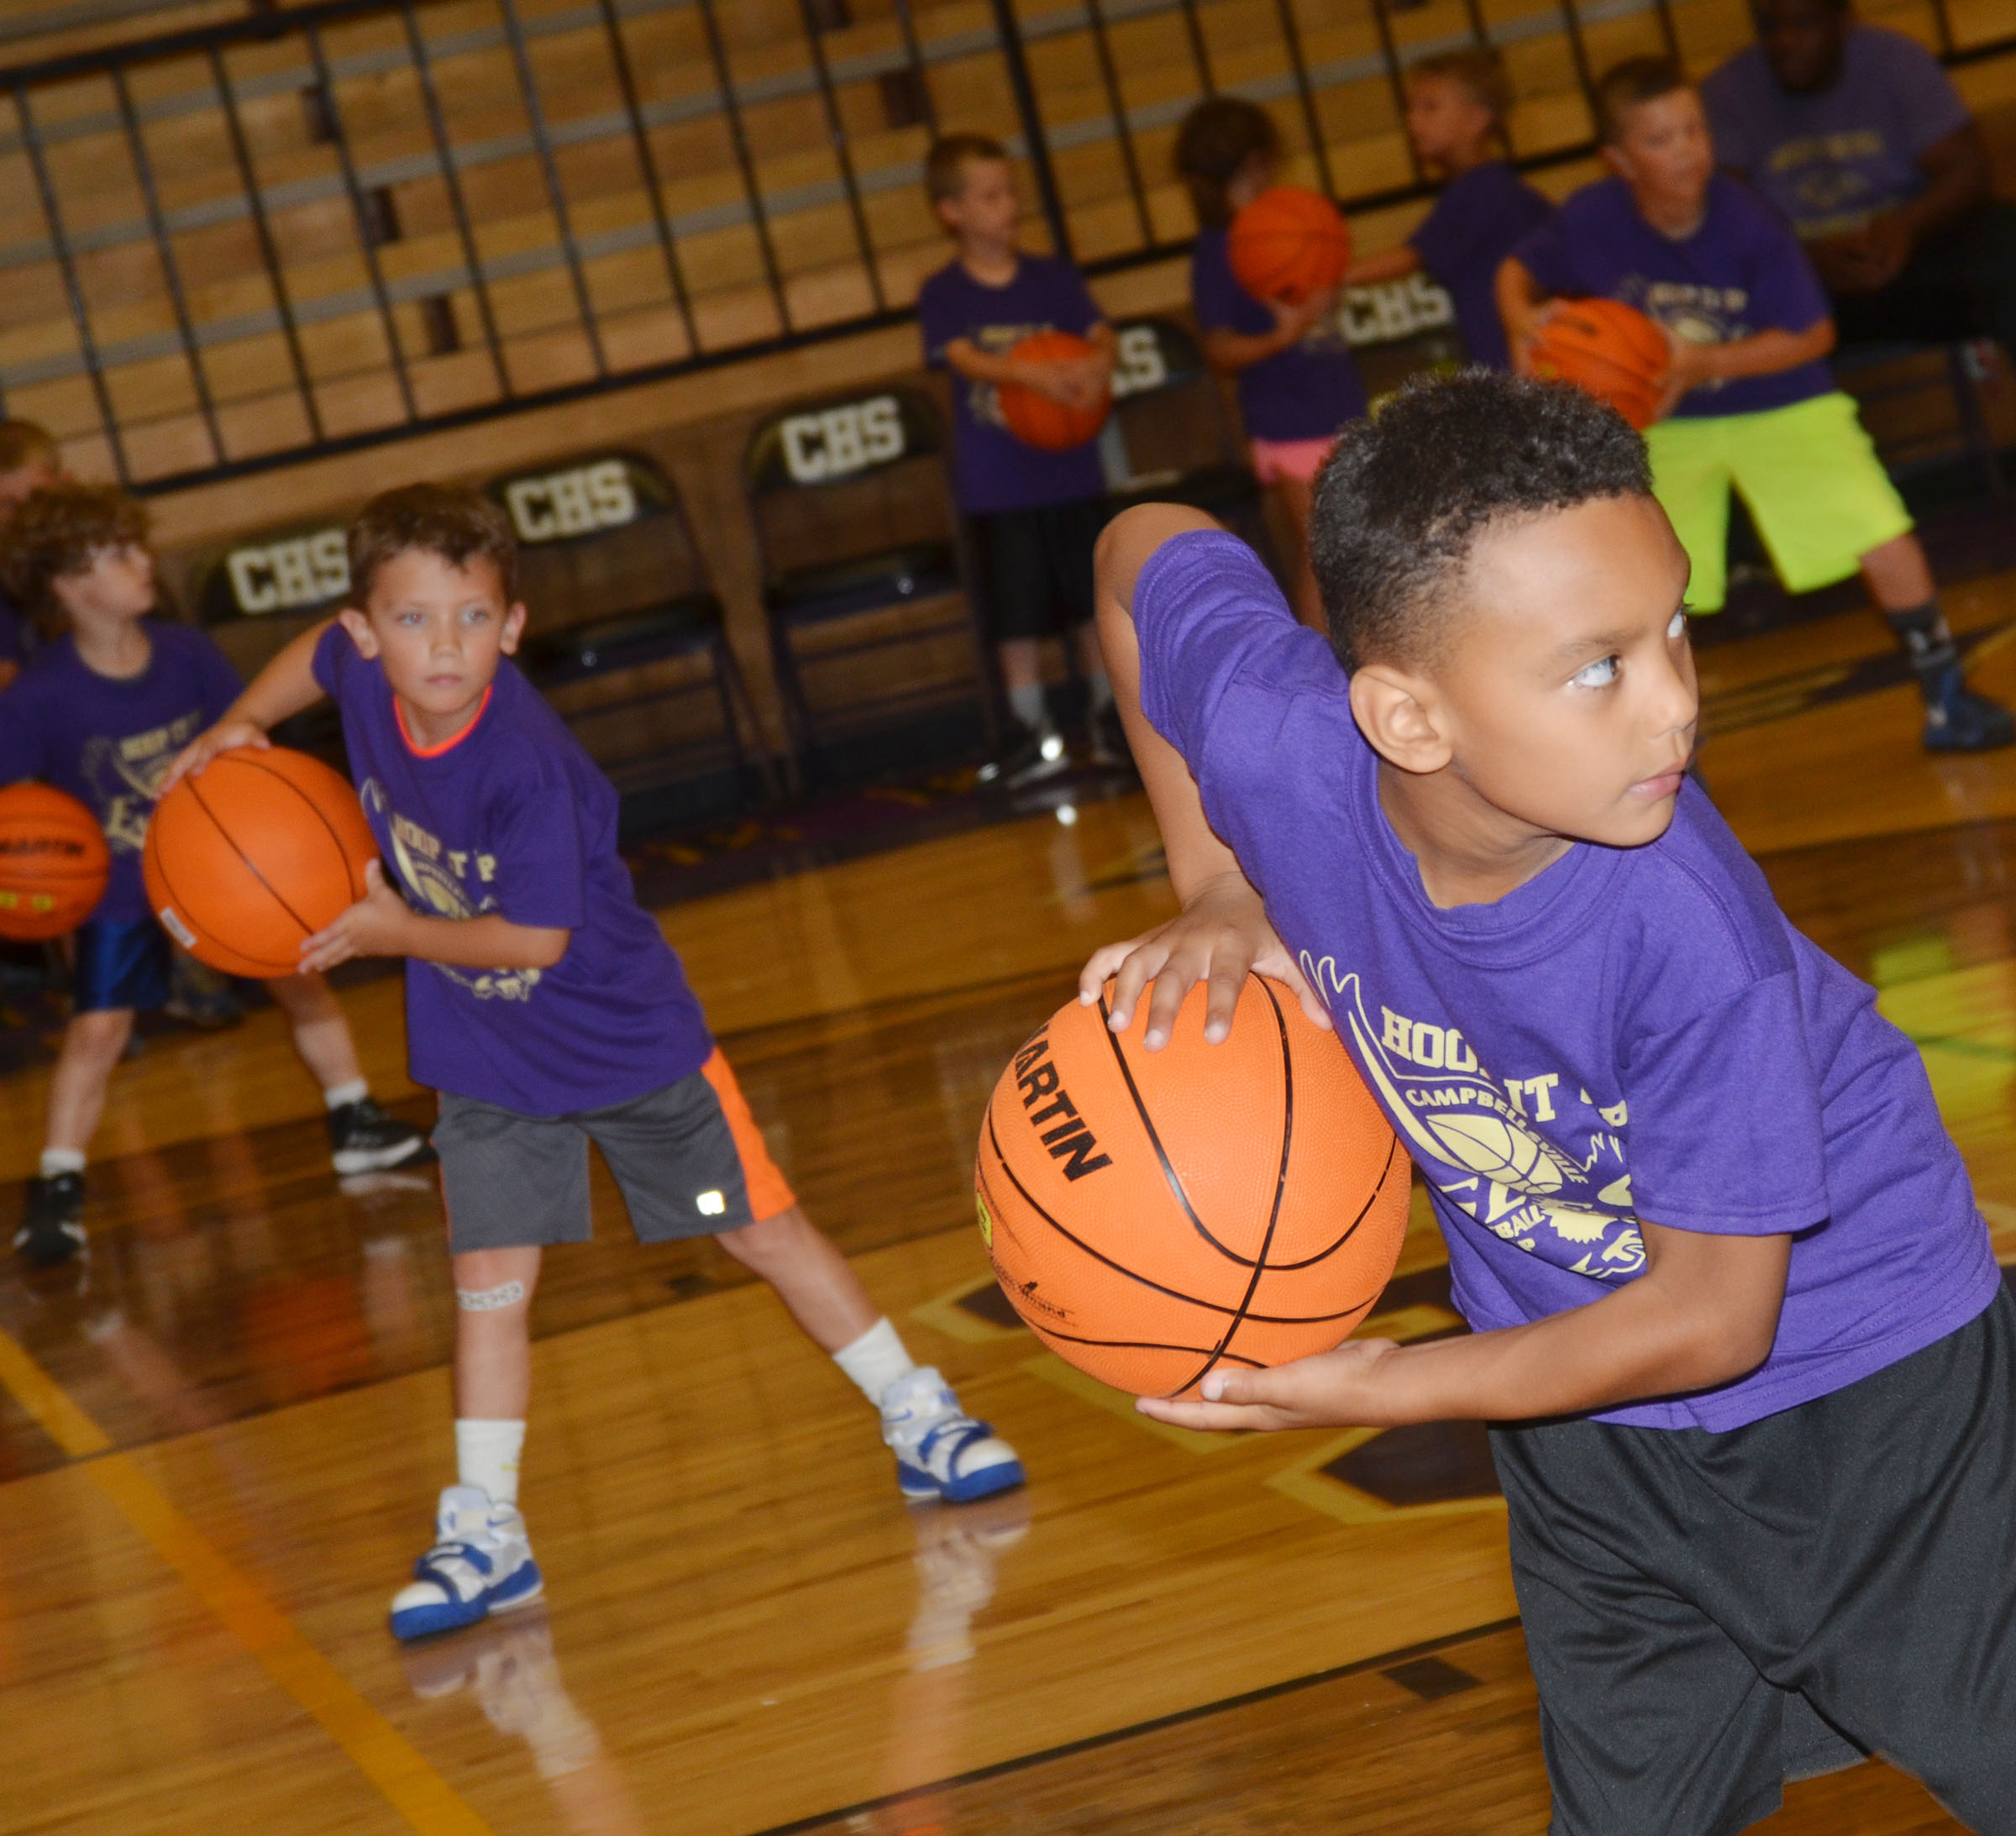 Owen Skaggs, at left, and Maddox Hawkins practice handling the ball.